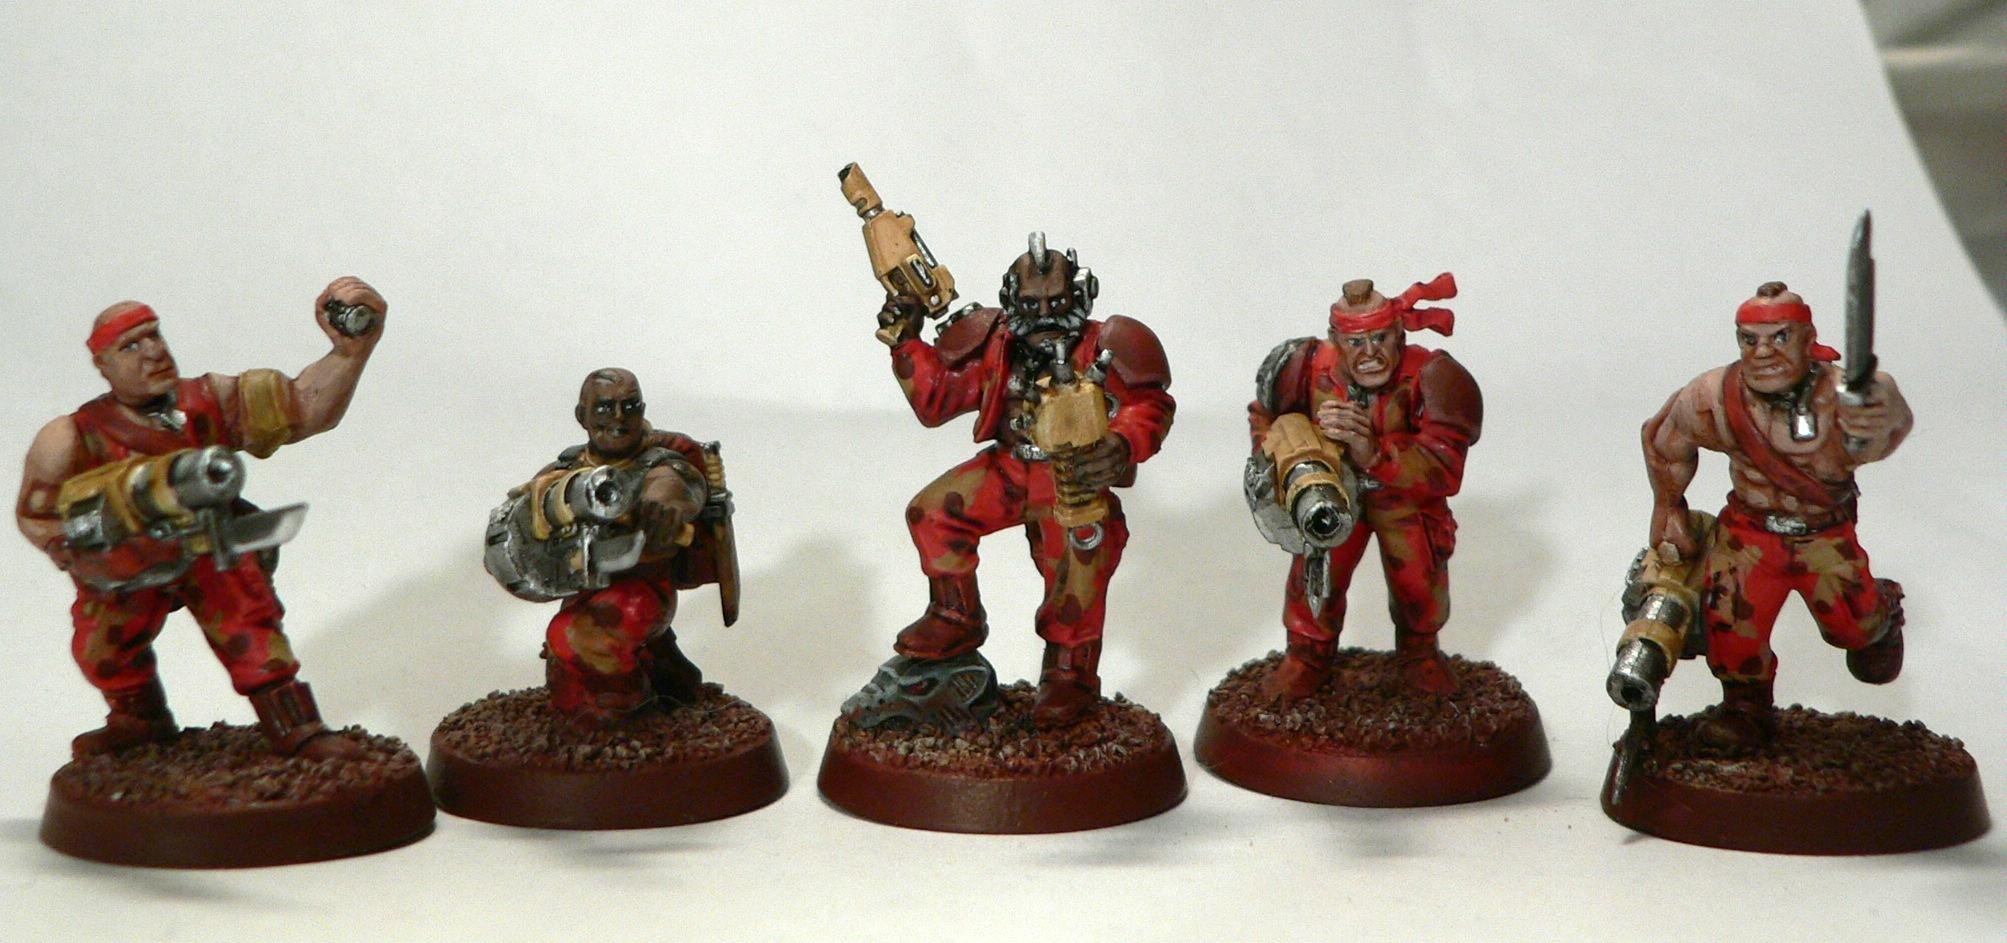 Catachan, Command Squad, Grenade Launcher, Imperial Guard, Mars, Martian, Warhammer 40,000